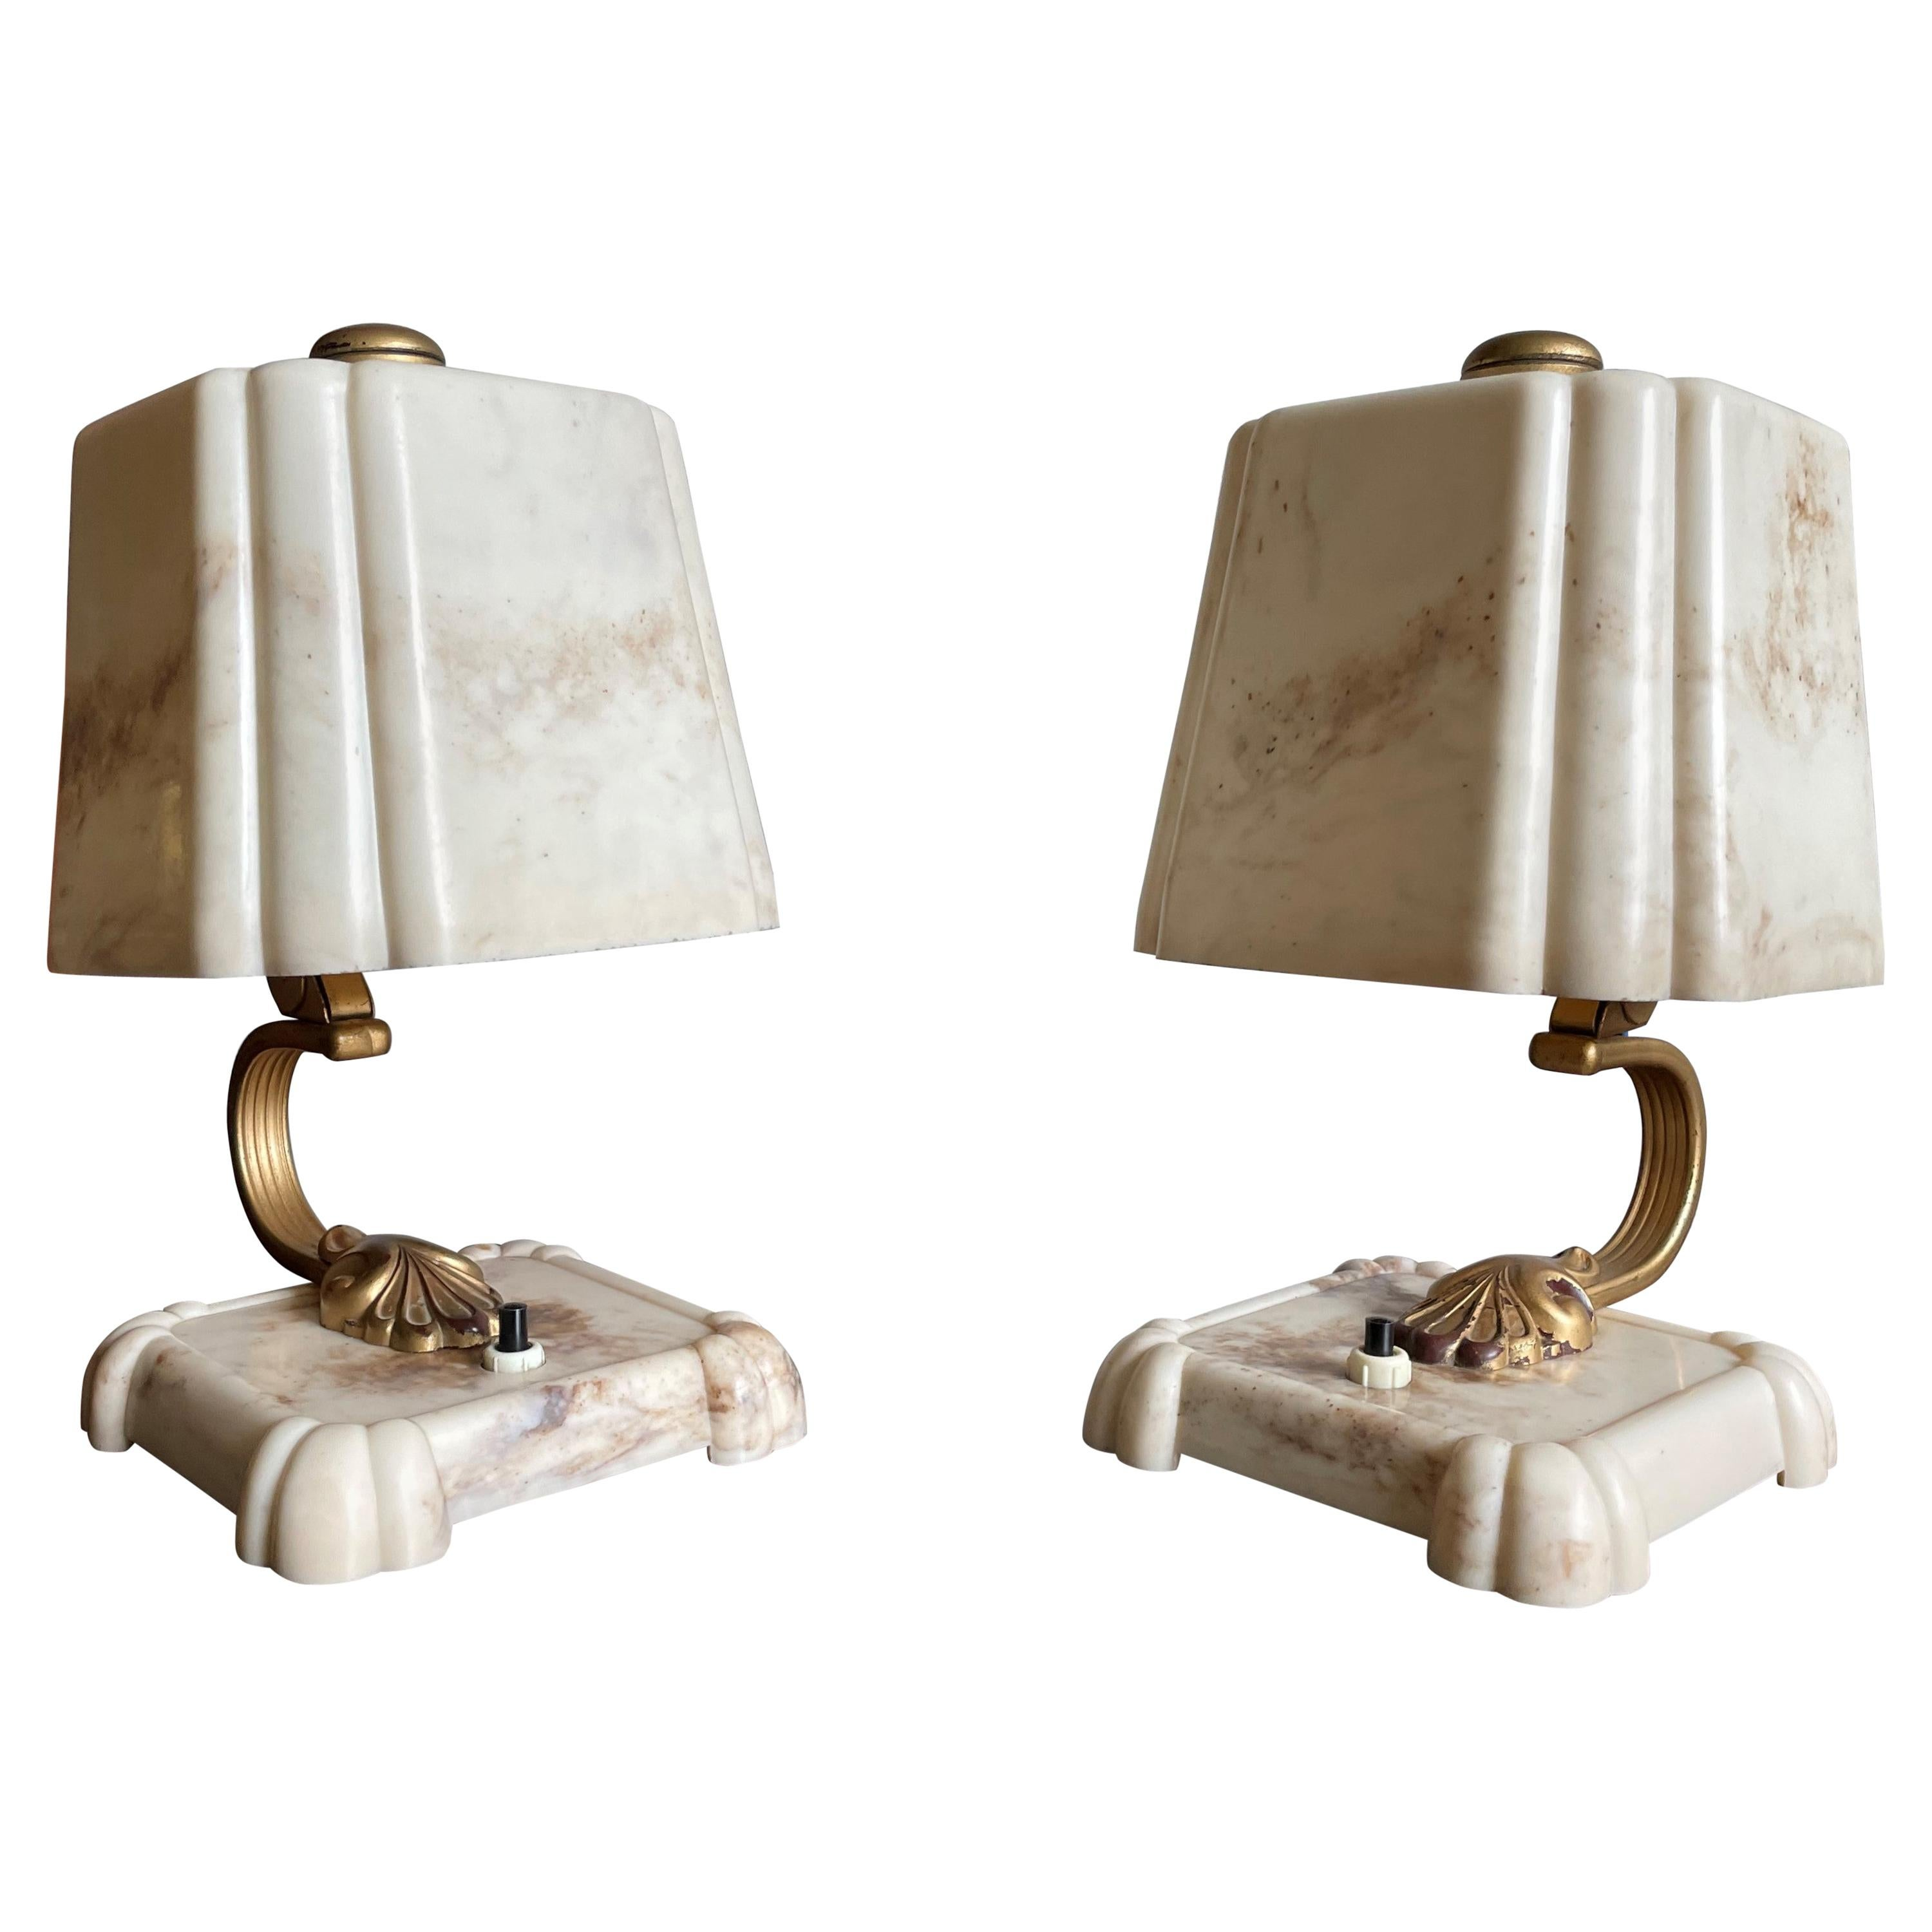 Stunning and Rare Pair of 1930s Art Deco Table or Bedside Lamps Made of Bakelite